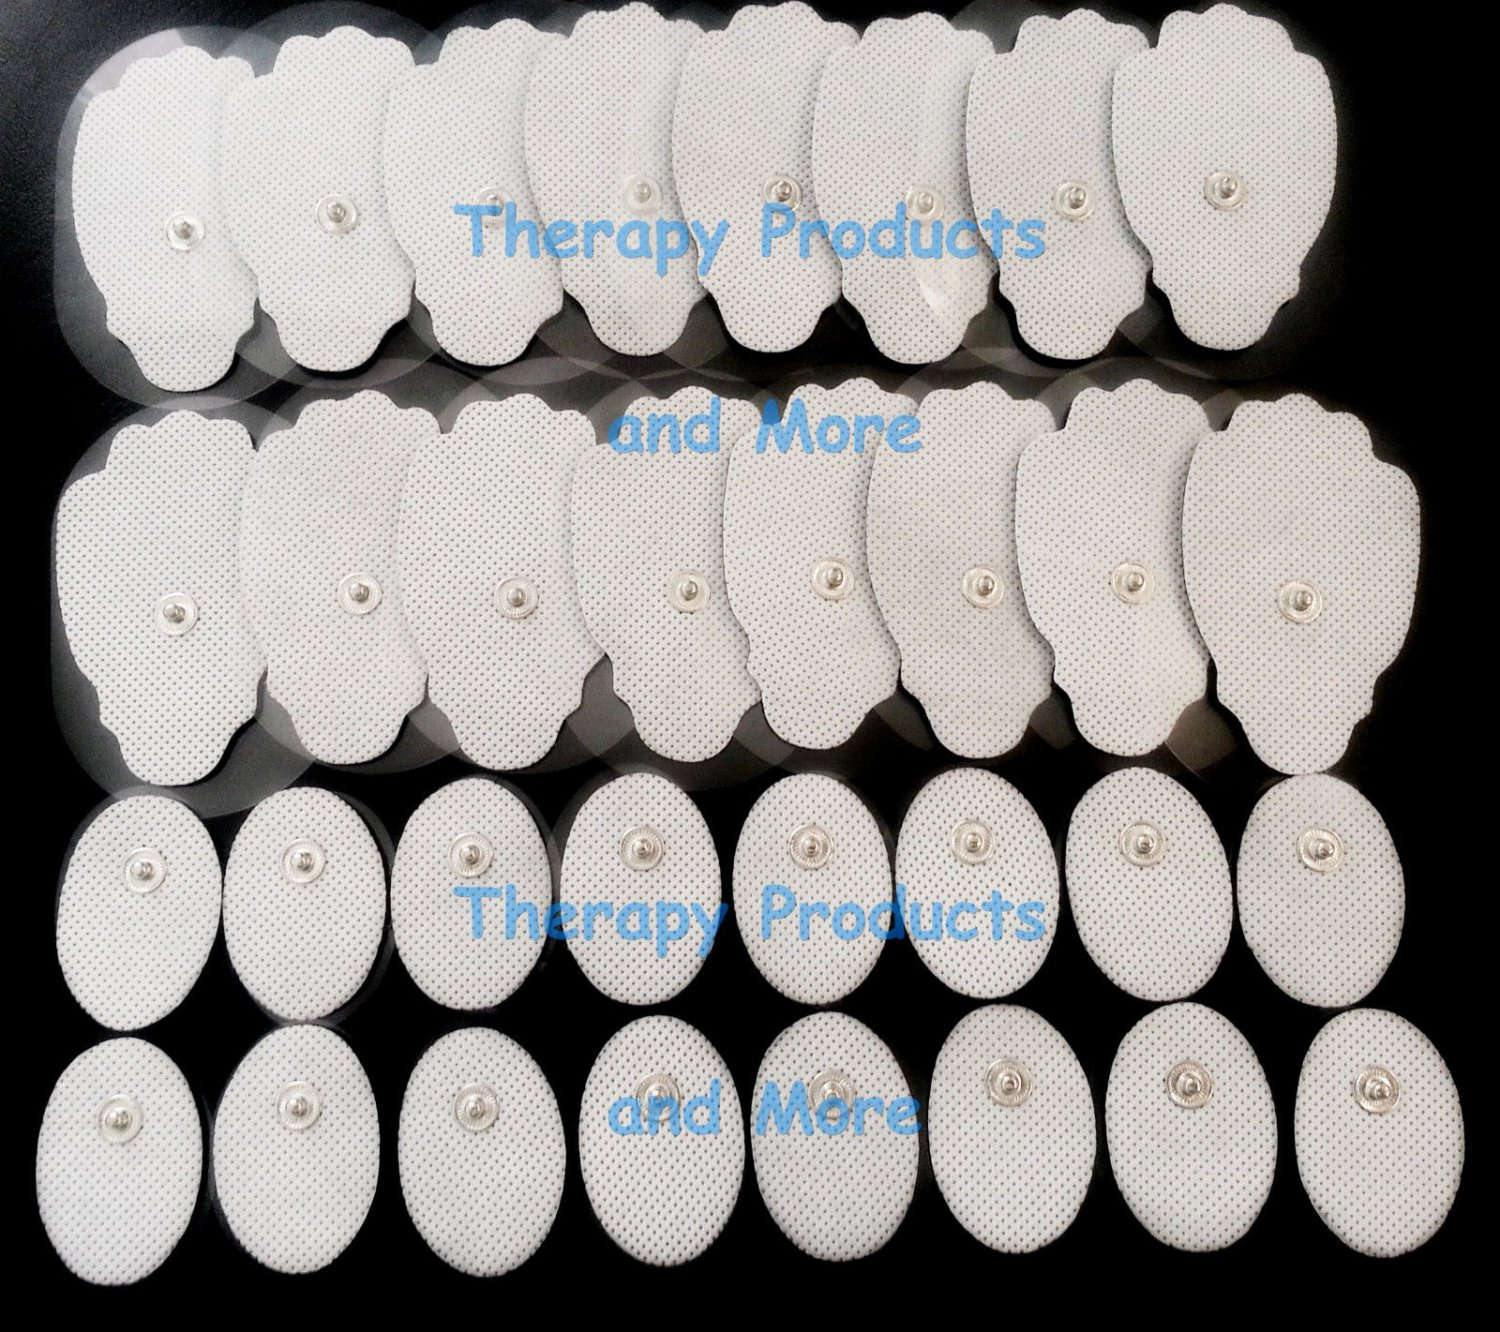 REPLACEMENT ELECTRODE PADS (16 LG + 16 SM OVAL) GEL STICKY THICK MASSAGE PADS